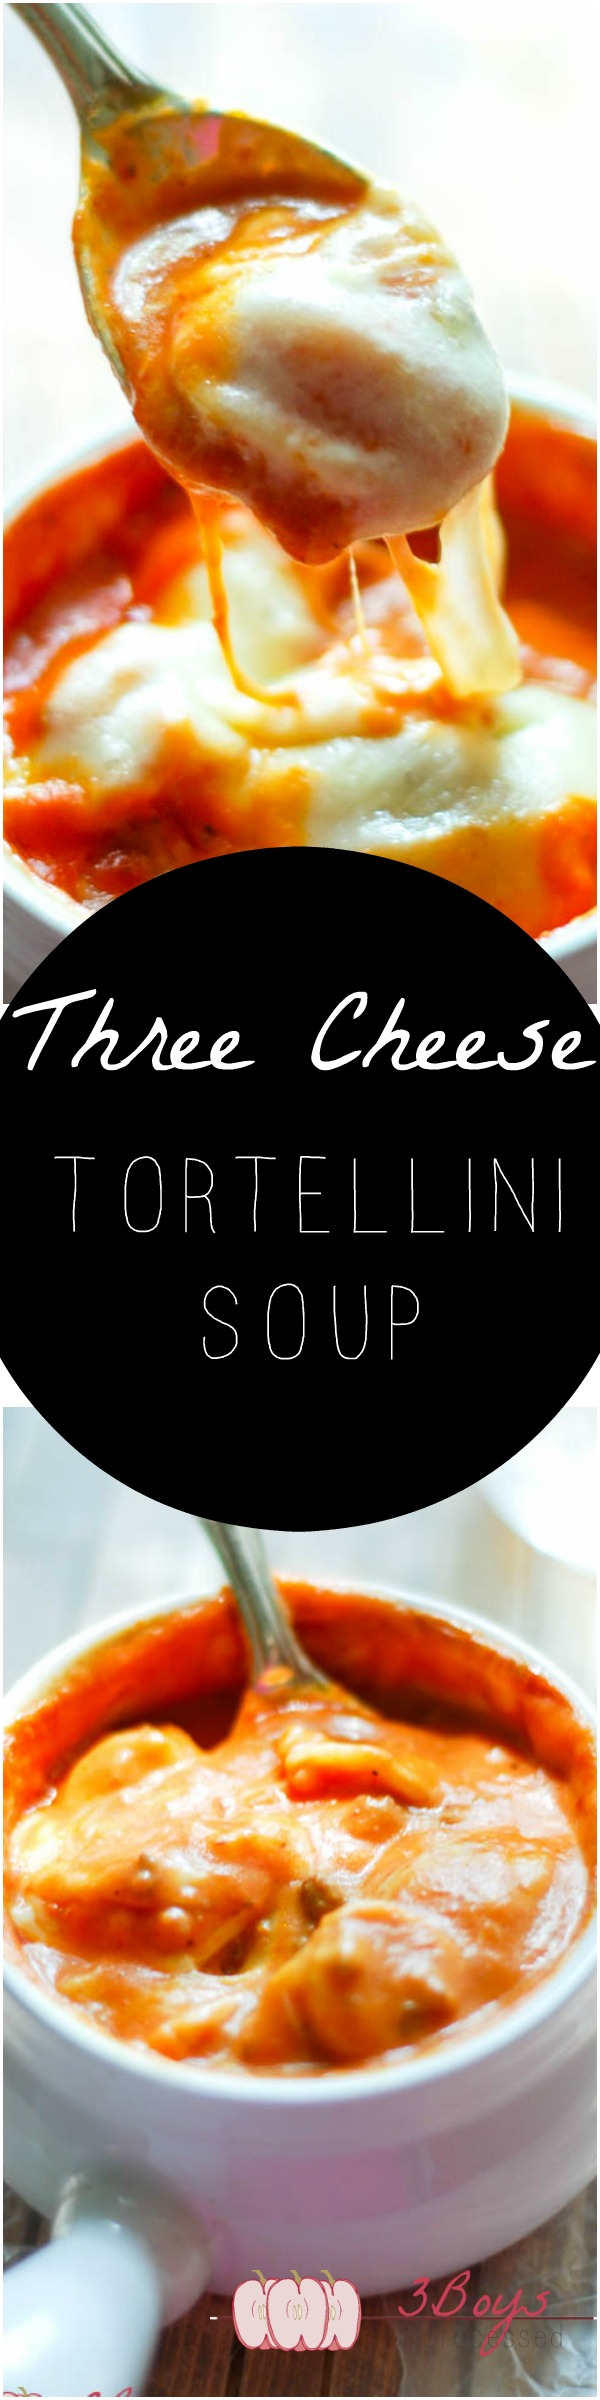 Three Cheese Tortellini Soup || A delicious blend of ground beef, cheese, and tortellini smothered in a thick and creamy tomato soup. The ultimate comfort soup! || www.3boysunprocessed.com